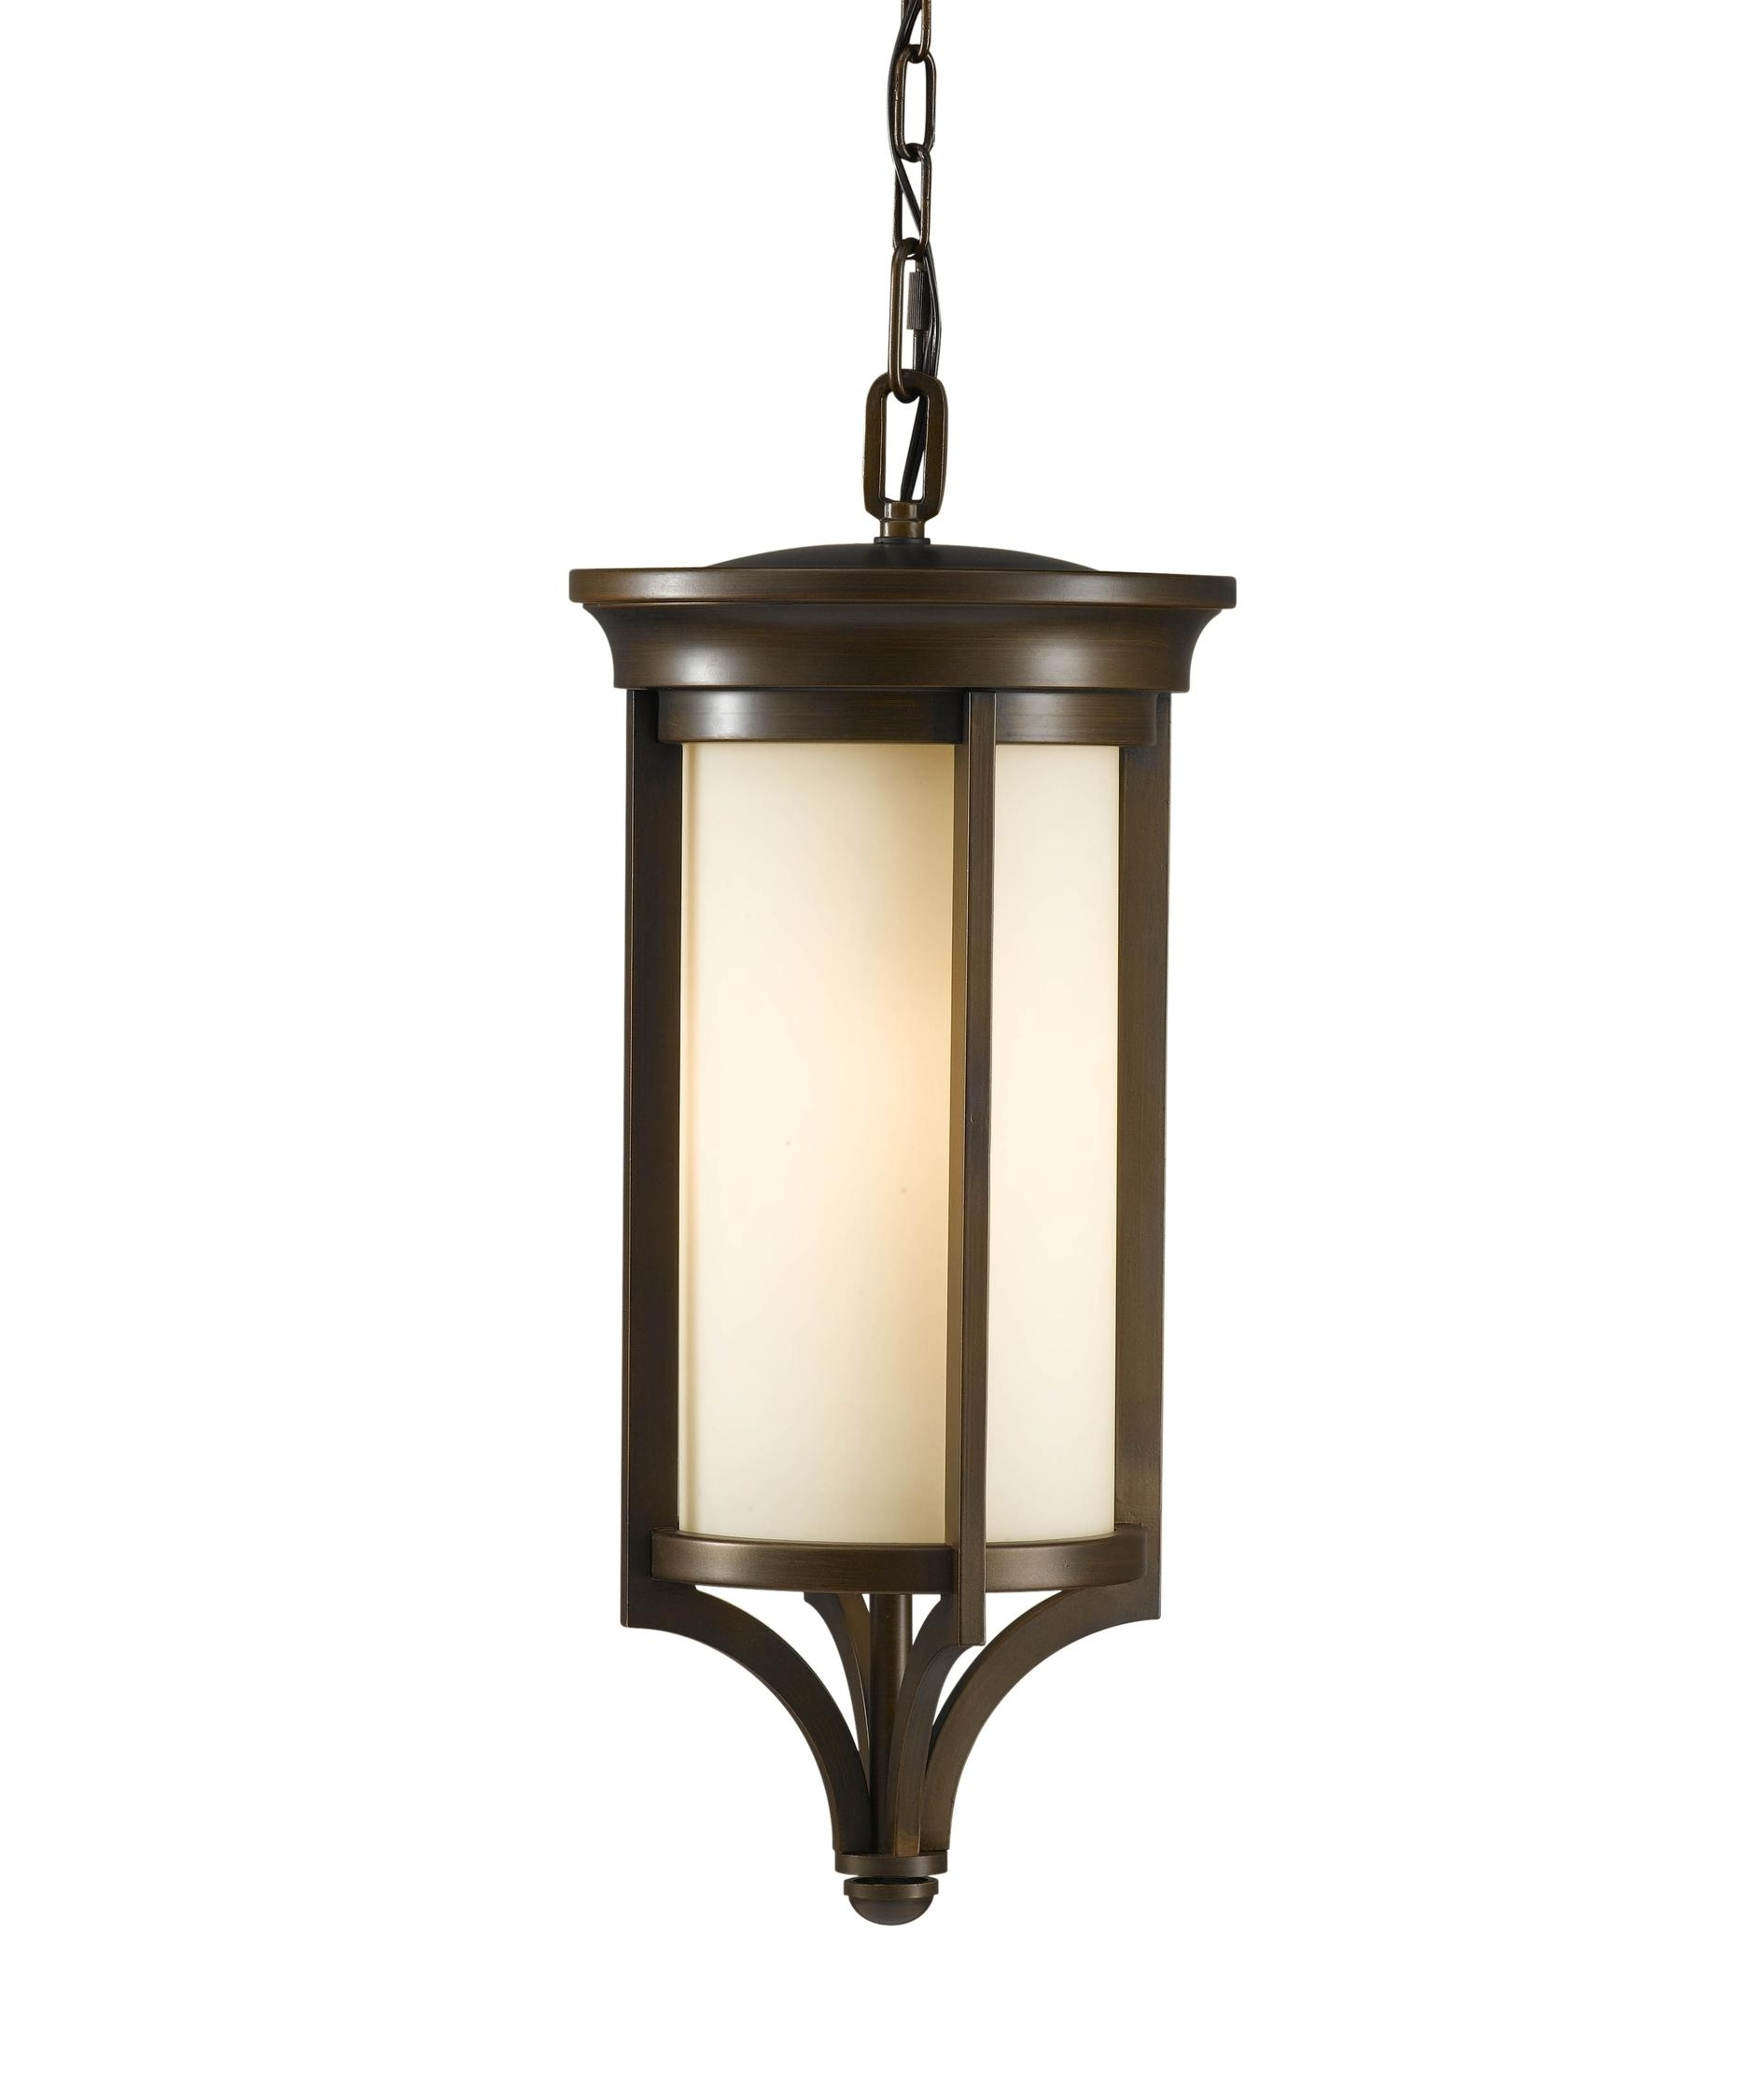 Newest Outdoor Hanging Electric Lanterns With Murray Feiss Ol7511 Merrill 10 Inch Wide 1 Light Outdoor Hanging (Gallery 14 of 20)